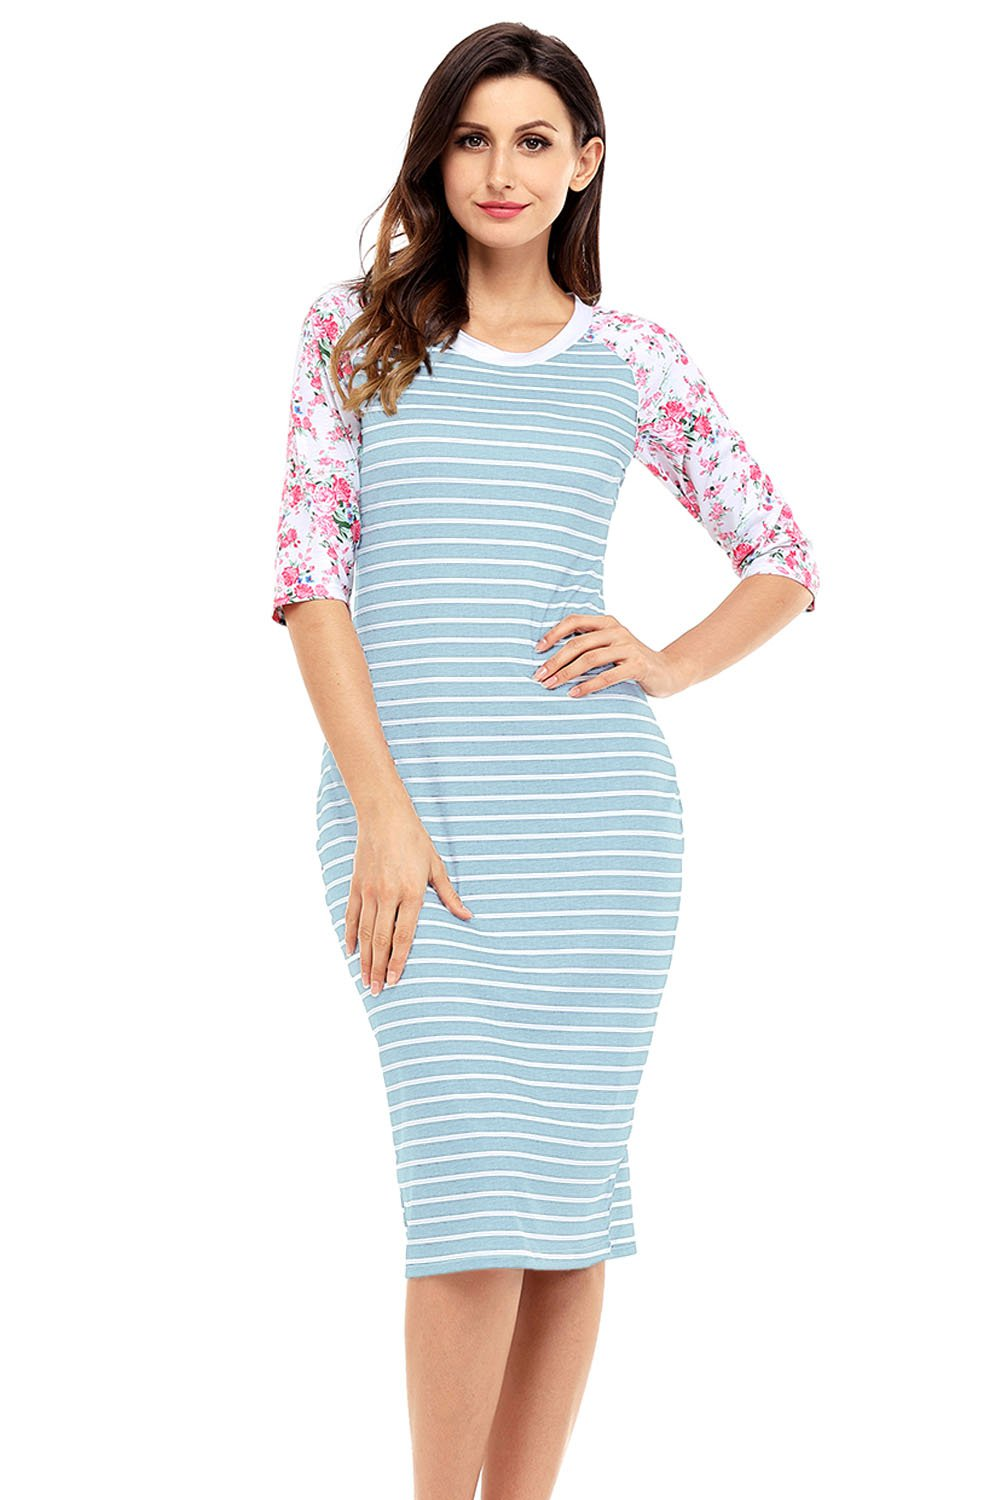 What Color Shoes With Blue And White Striped Dress